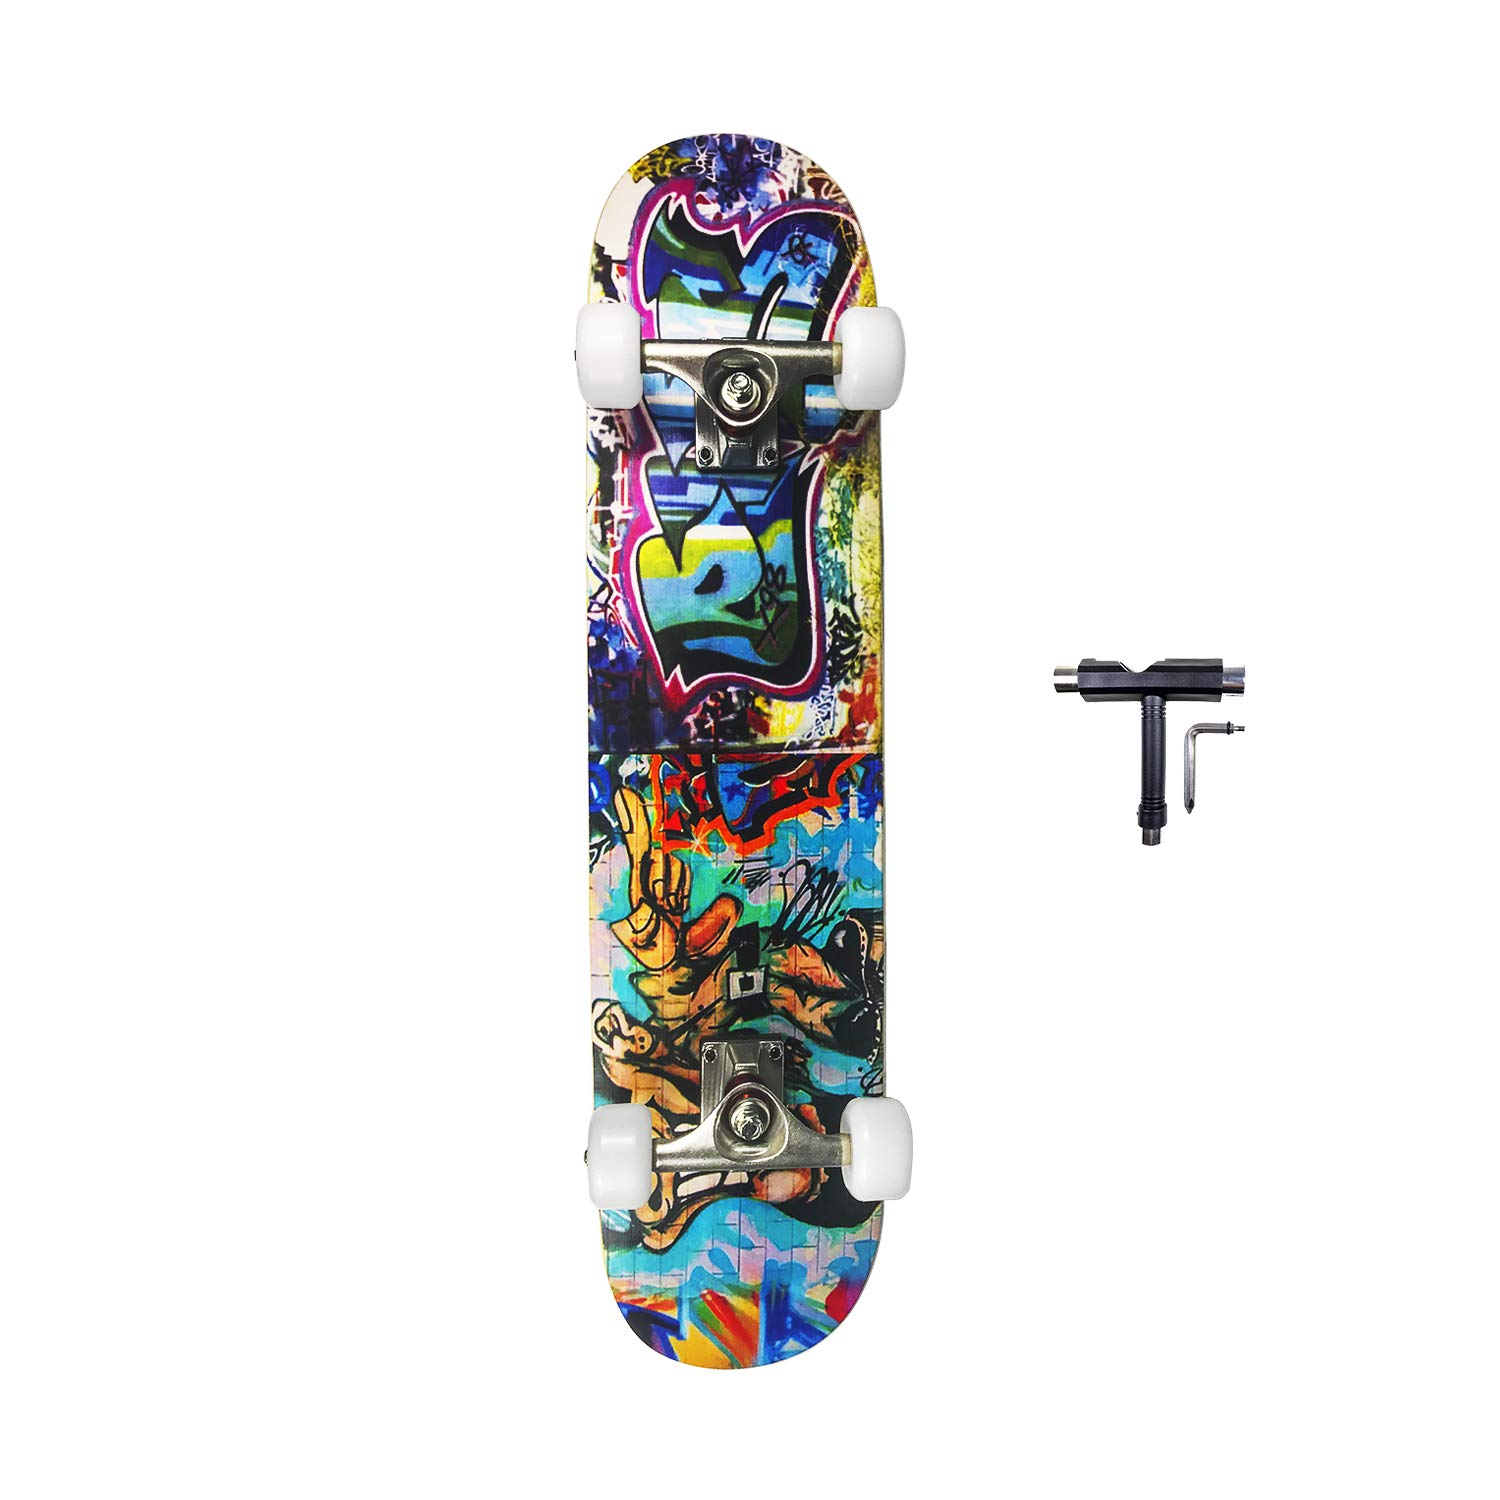 SHINPORT Double Kick 8x31 Inch Skateboard for Youth Adults with Upgraded 54x36mm Wheels for Beginners and Pros for Cruising Carving Freestyle Playing Tricks